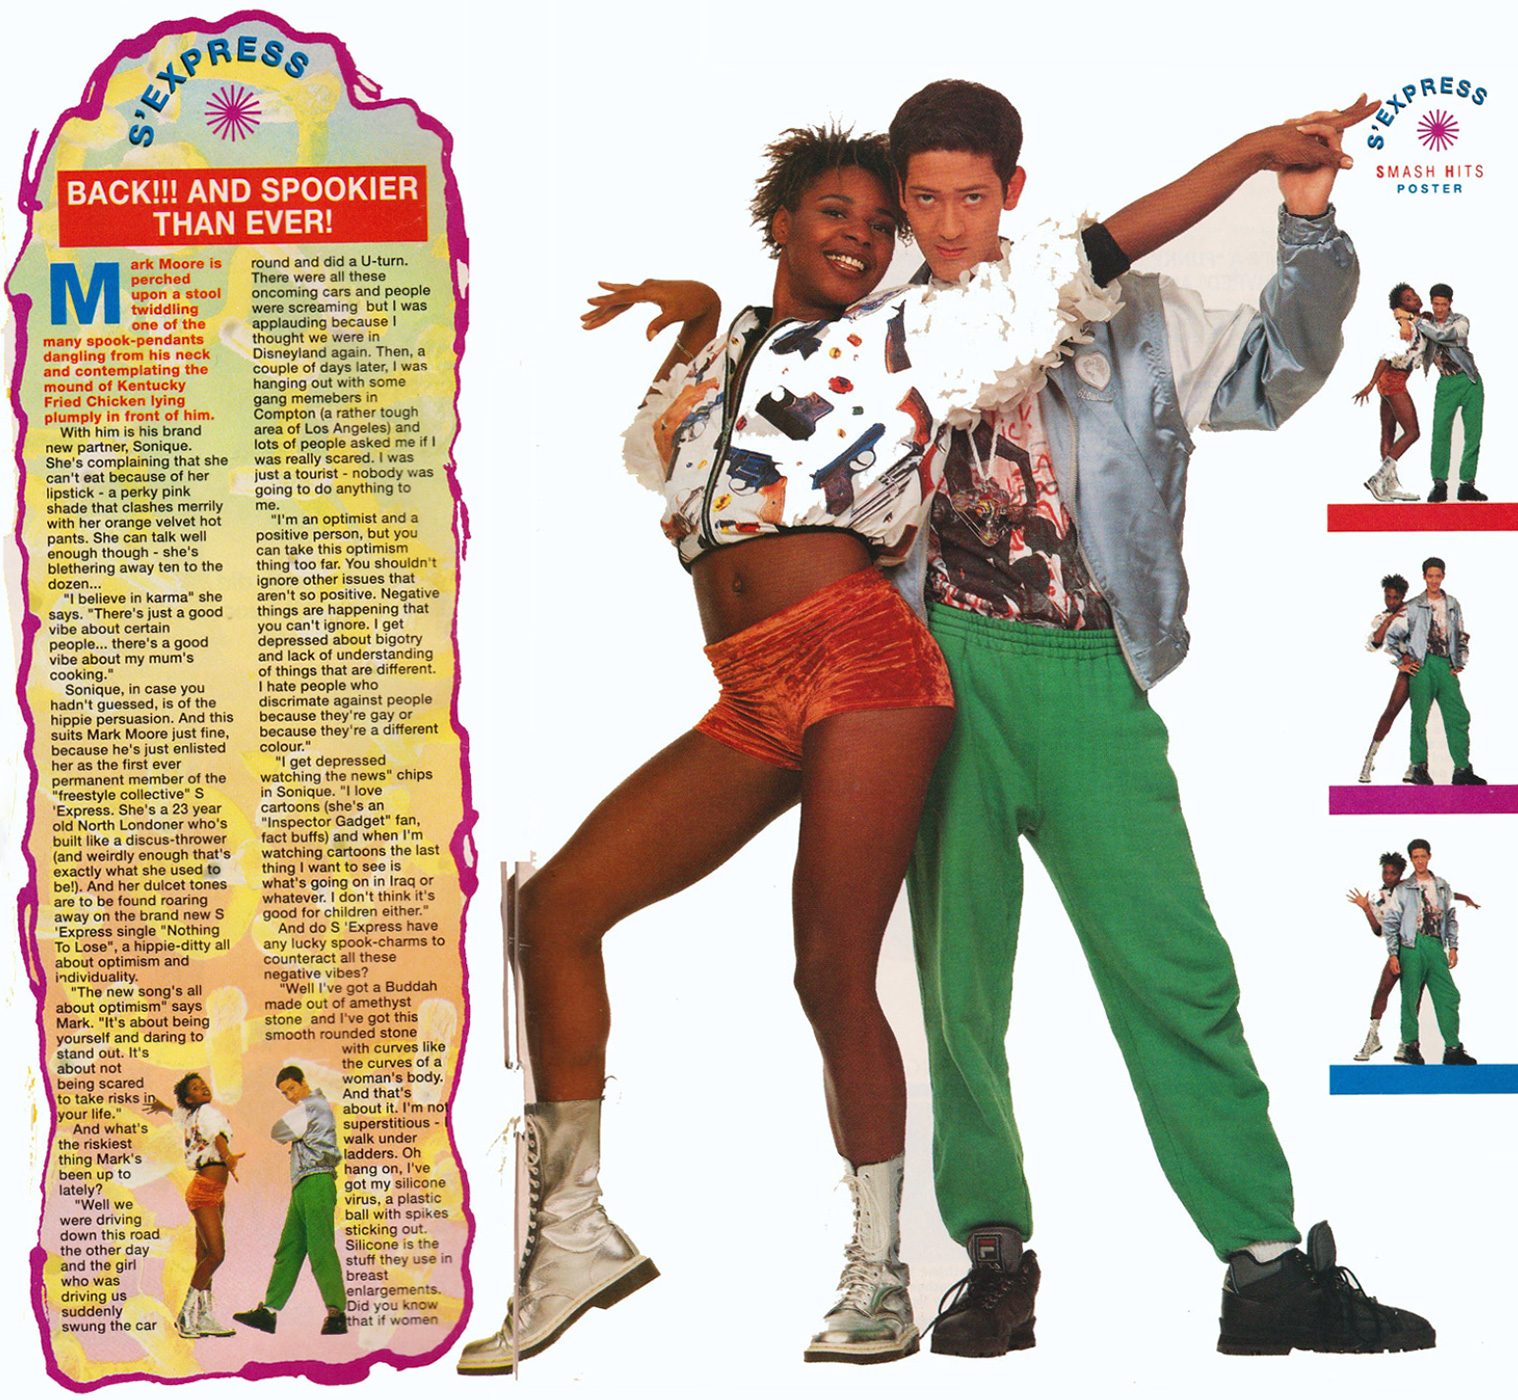 Mark Moore S'Express Smash Hits 1990 with Sonique